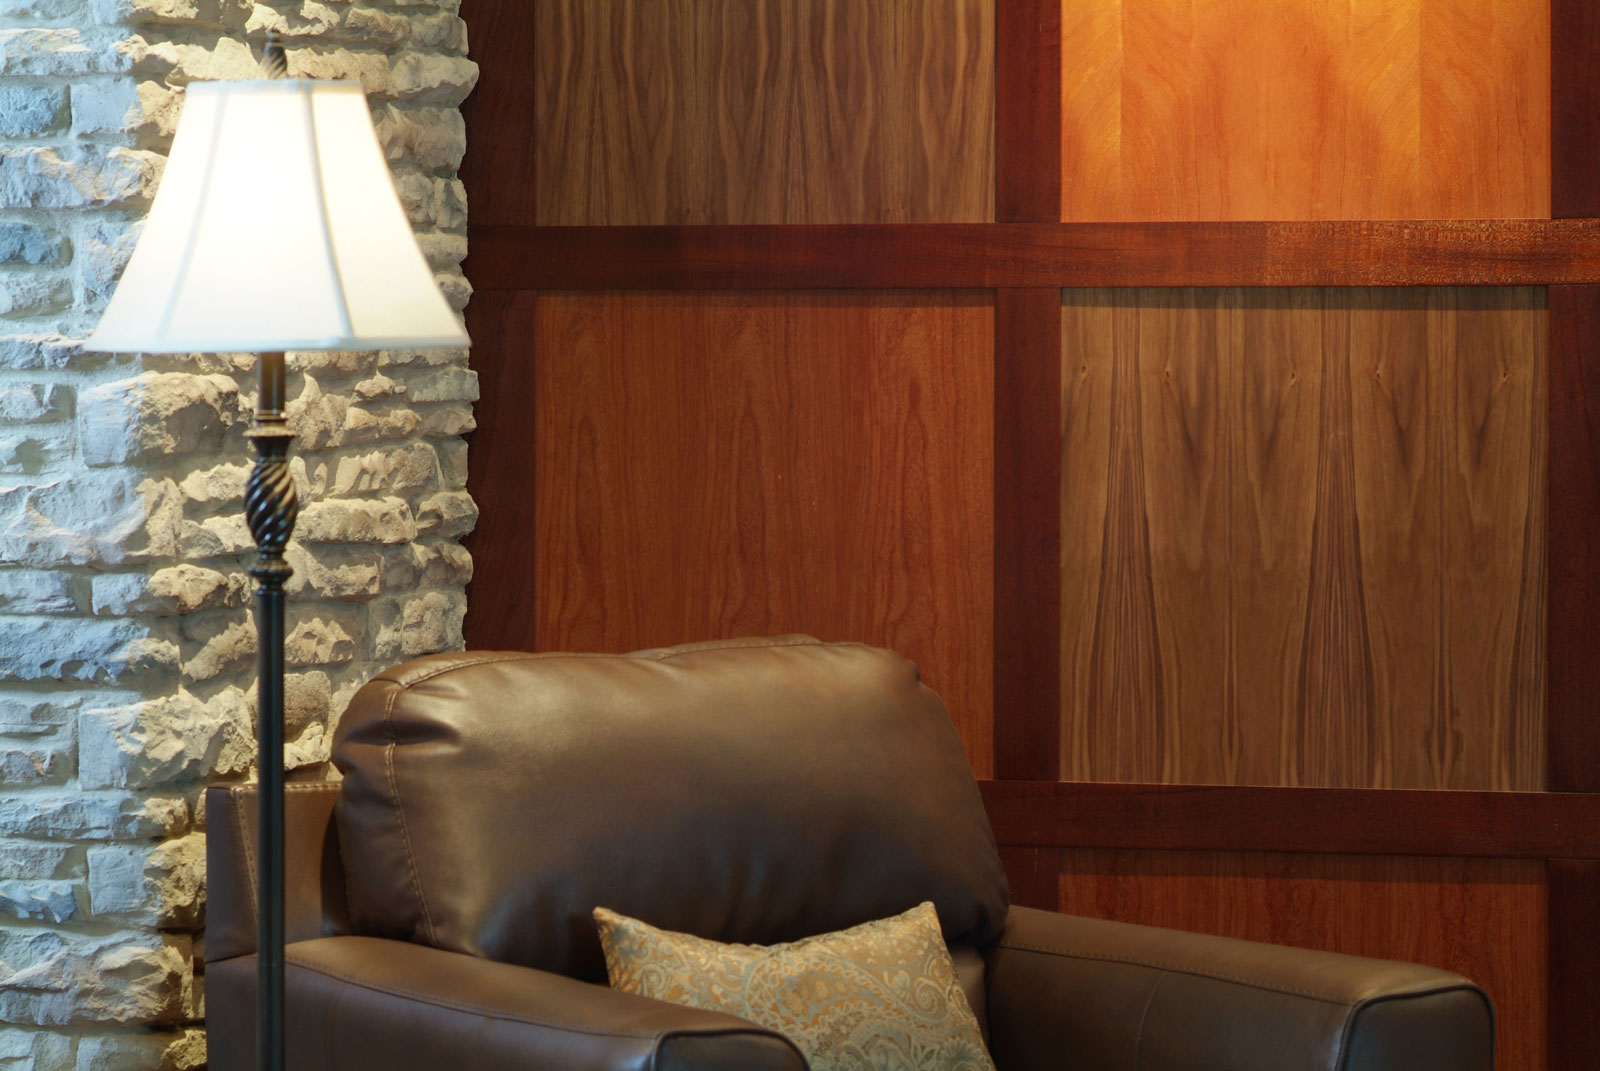 Contemporary Wood Paneling For Walls : Modern paneling by design the space